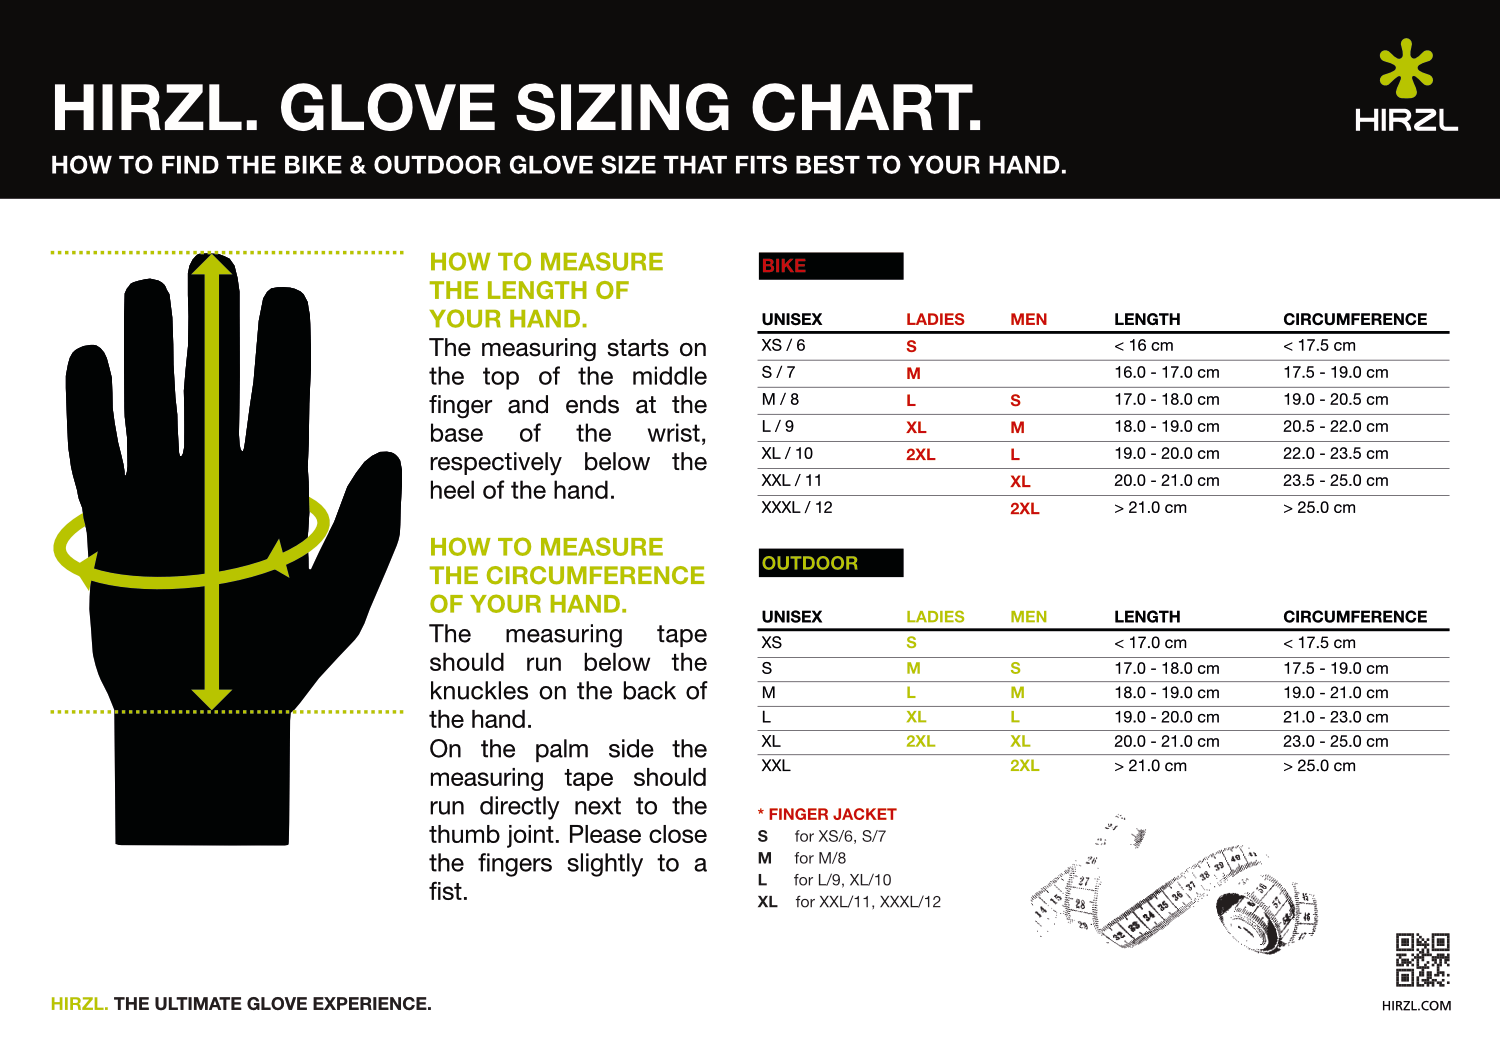 Hirzl's sizing chart - is accurate